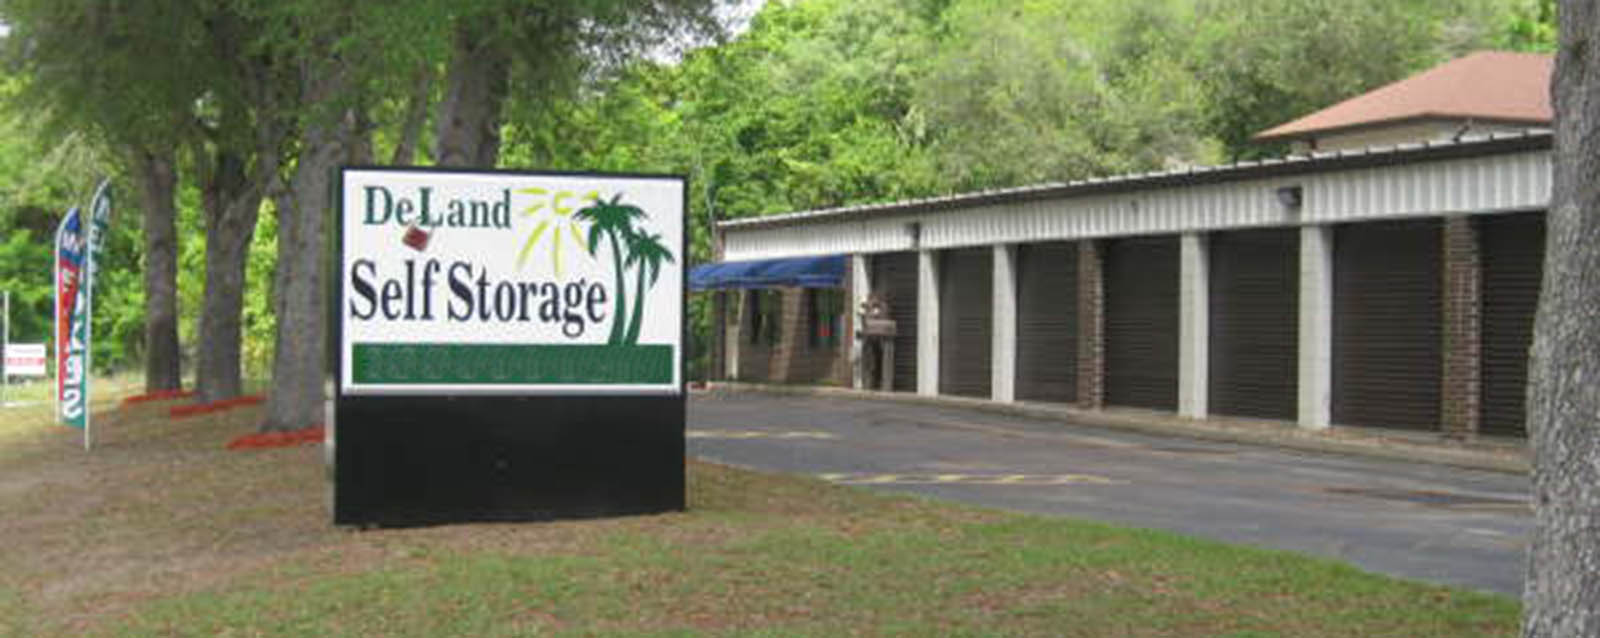 Deland self storage entry